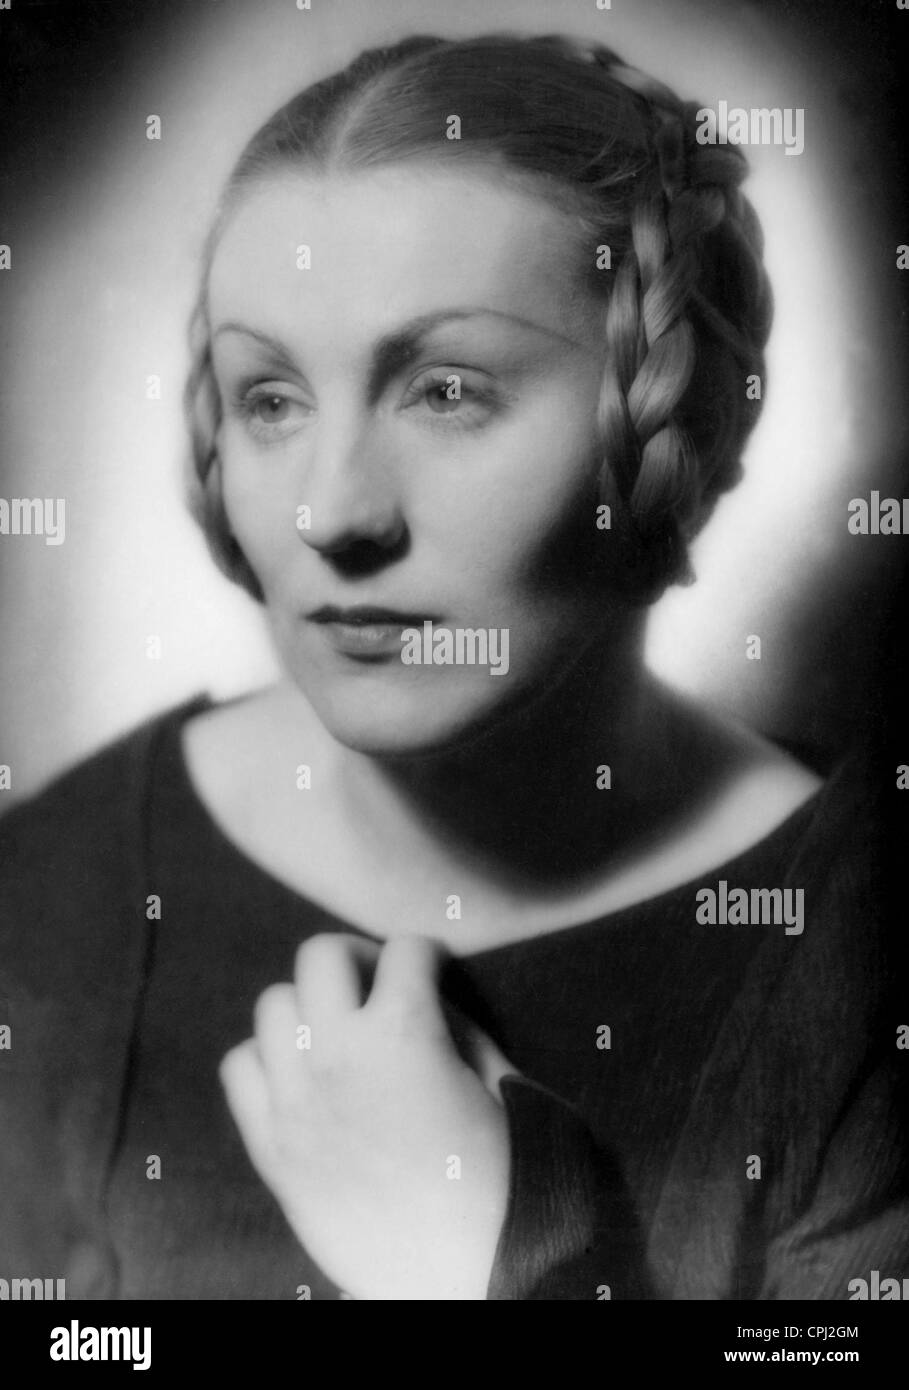 Kaethe Gold in 'Hamlet', 1936 - Stock Image